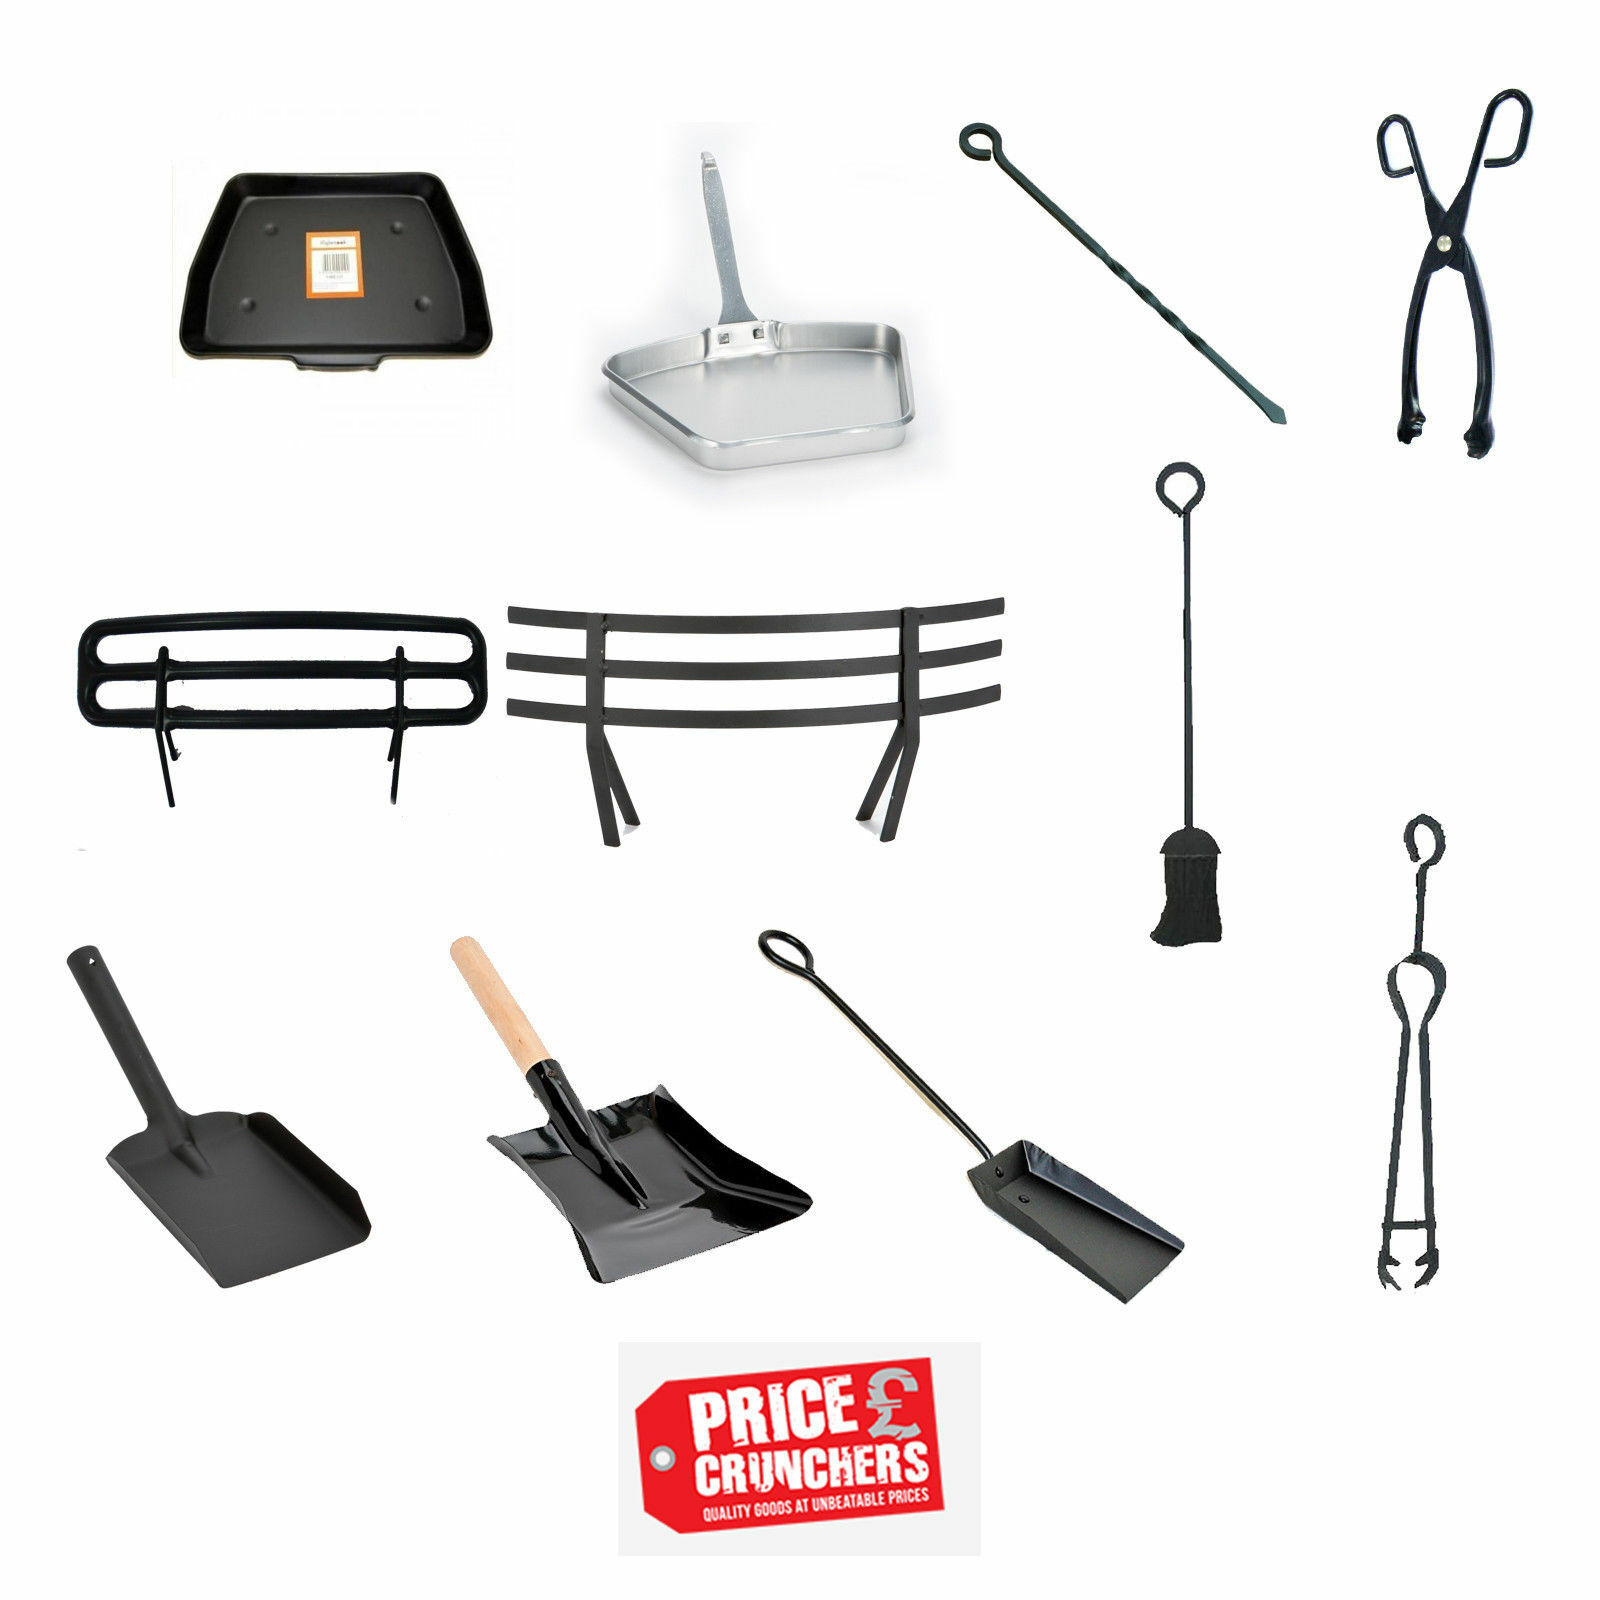 fireside fireplace coal ash fire tools shovel poker tongs pan